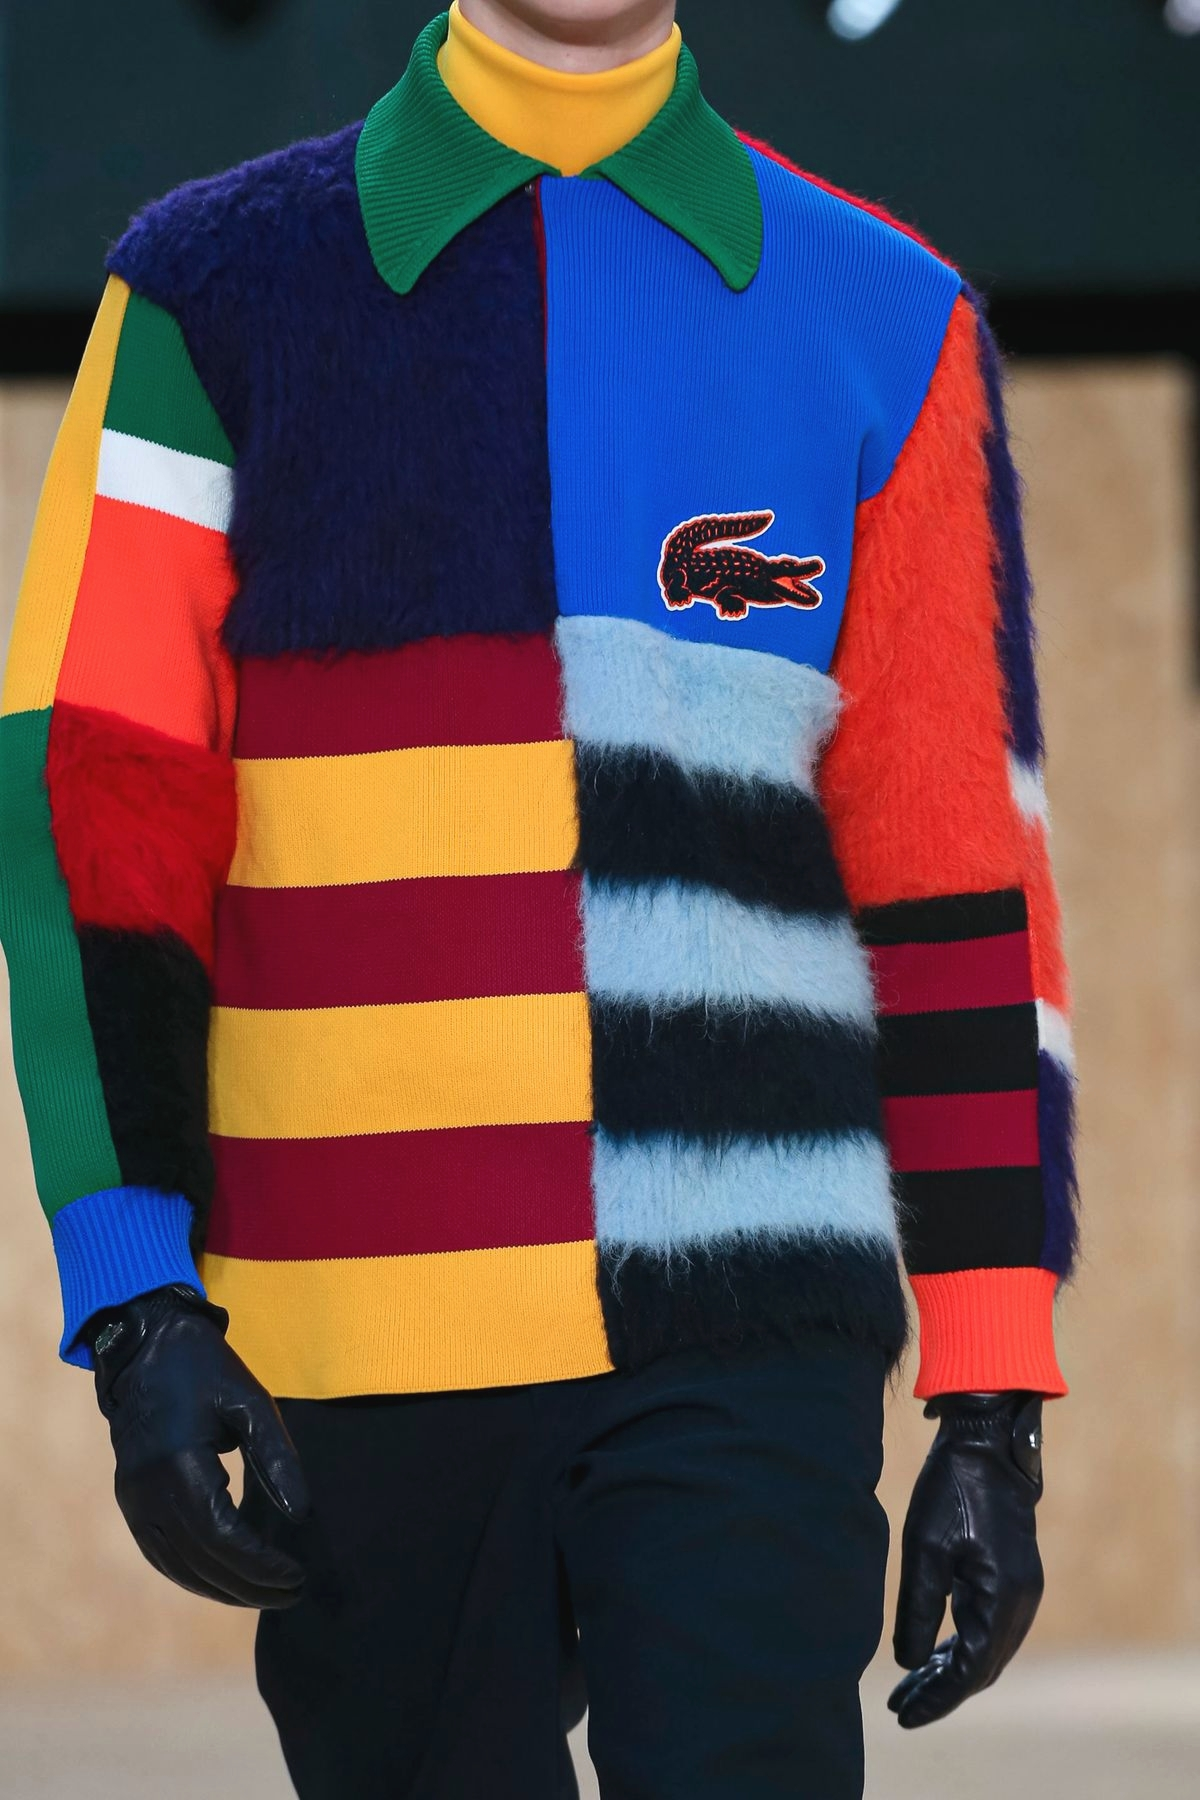 Lacoste Fall/Winter 2020 Ready-to-Wear